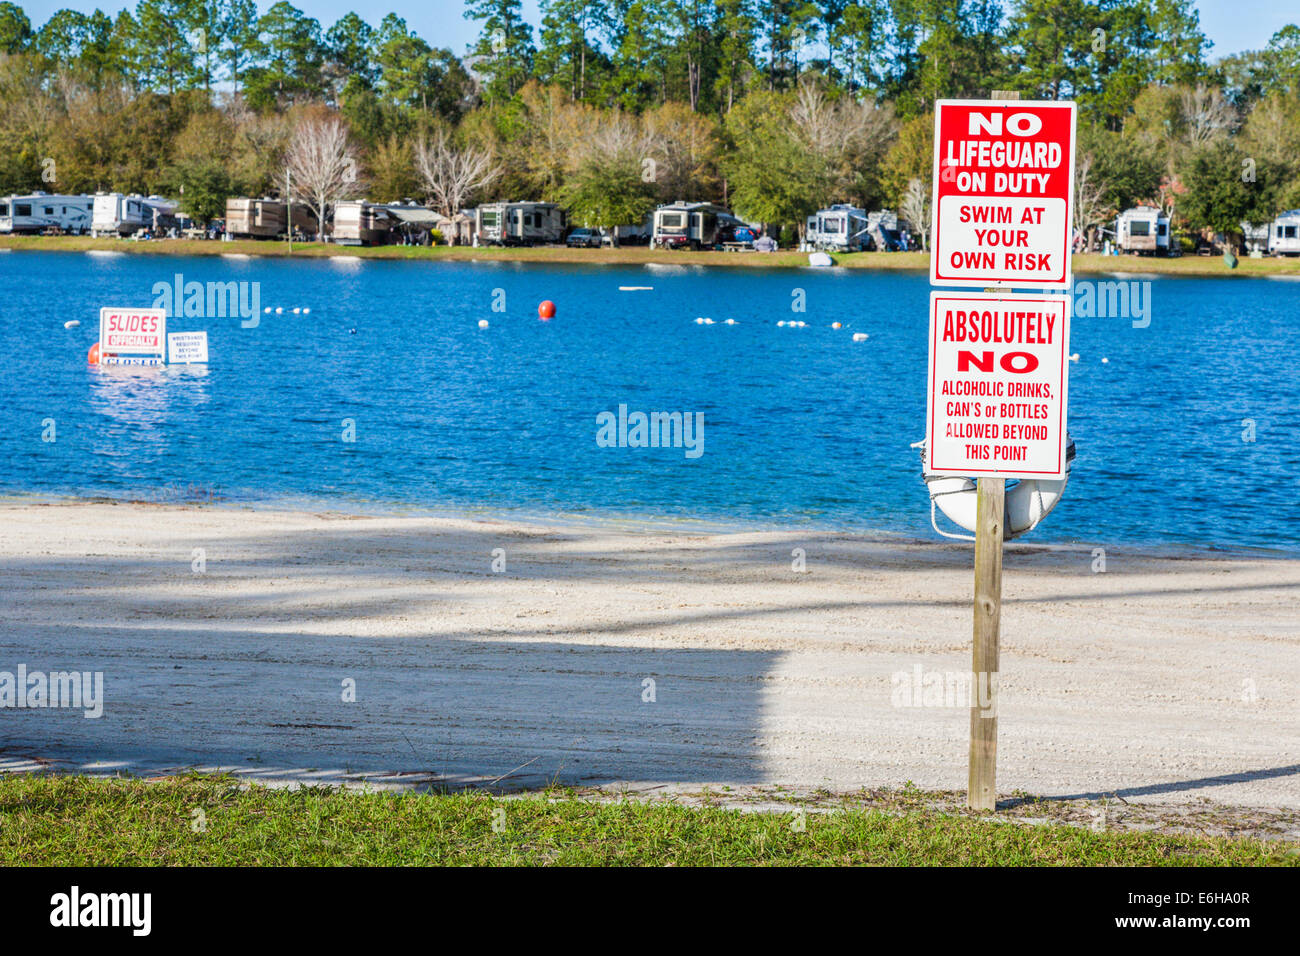 Signs warn of swimming at your own risk in lake at Flamingo Lake RV Resort in Jacksonville, Florida - Stock Image